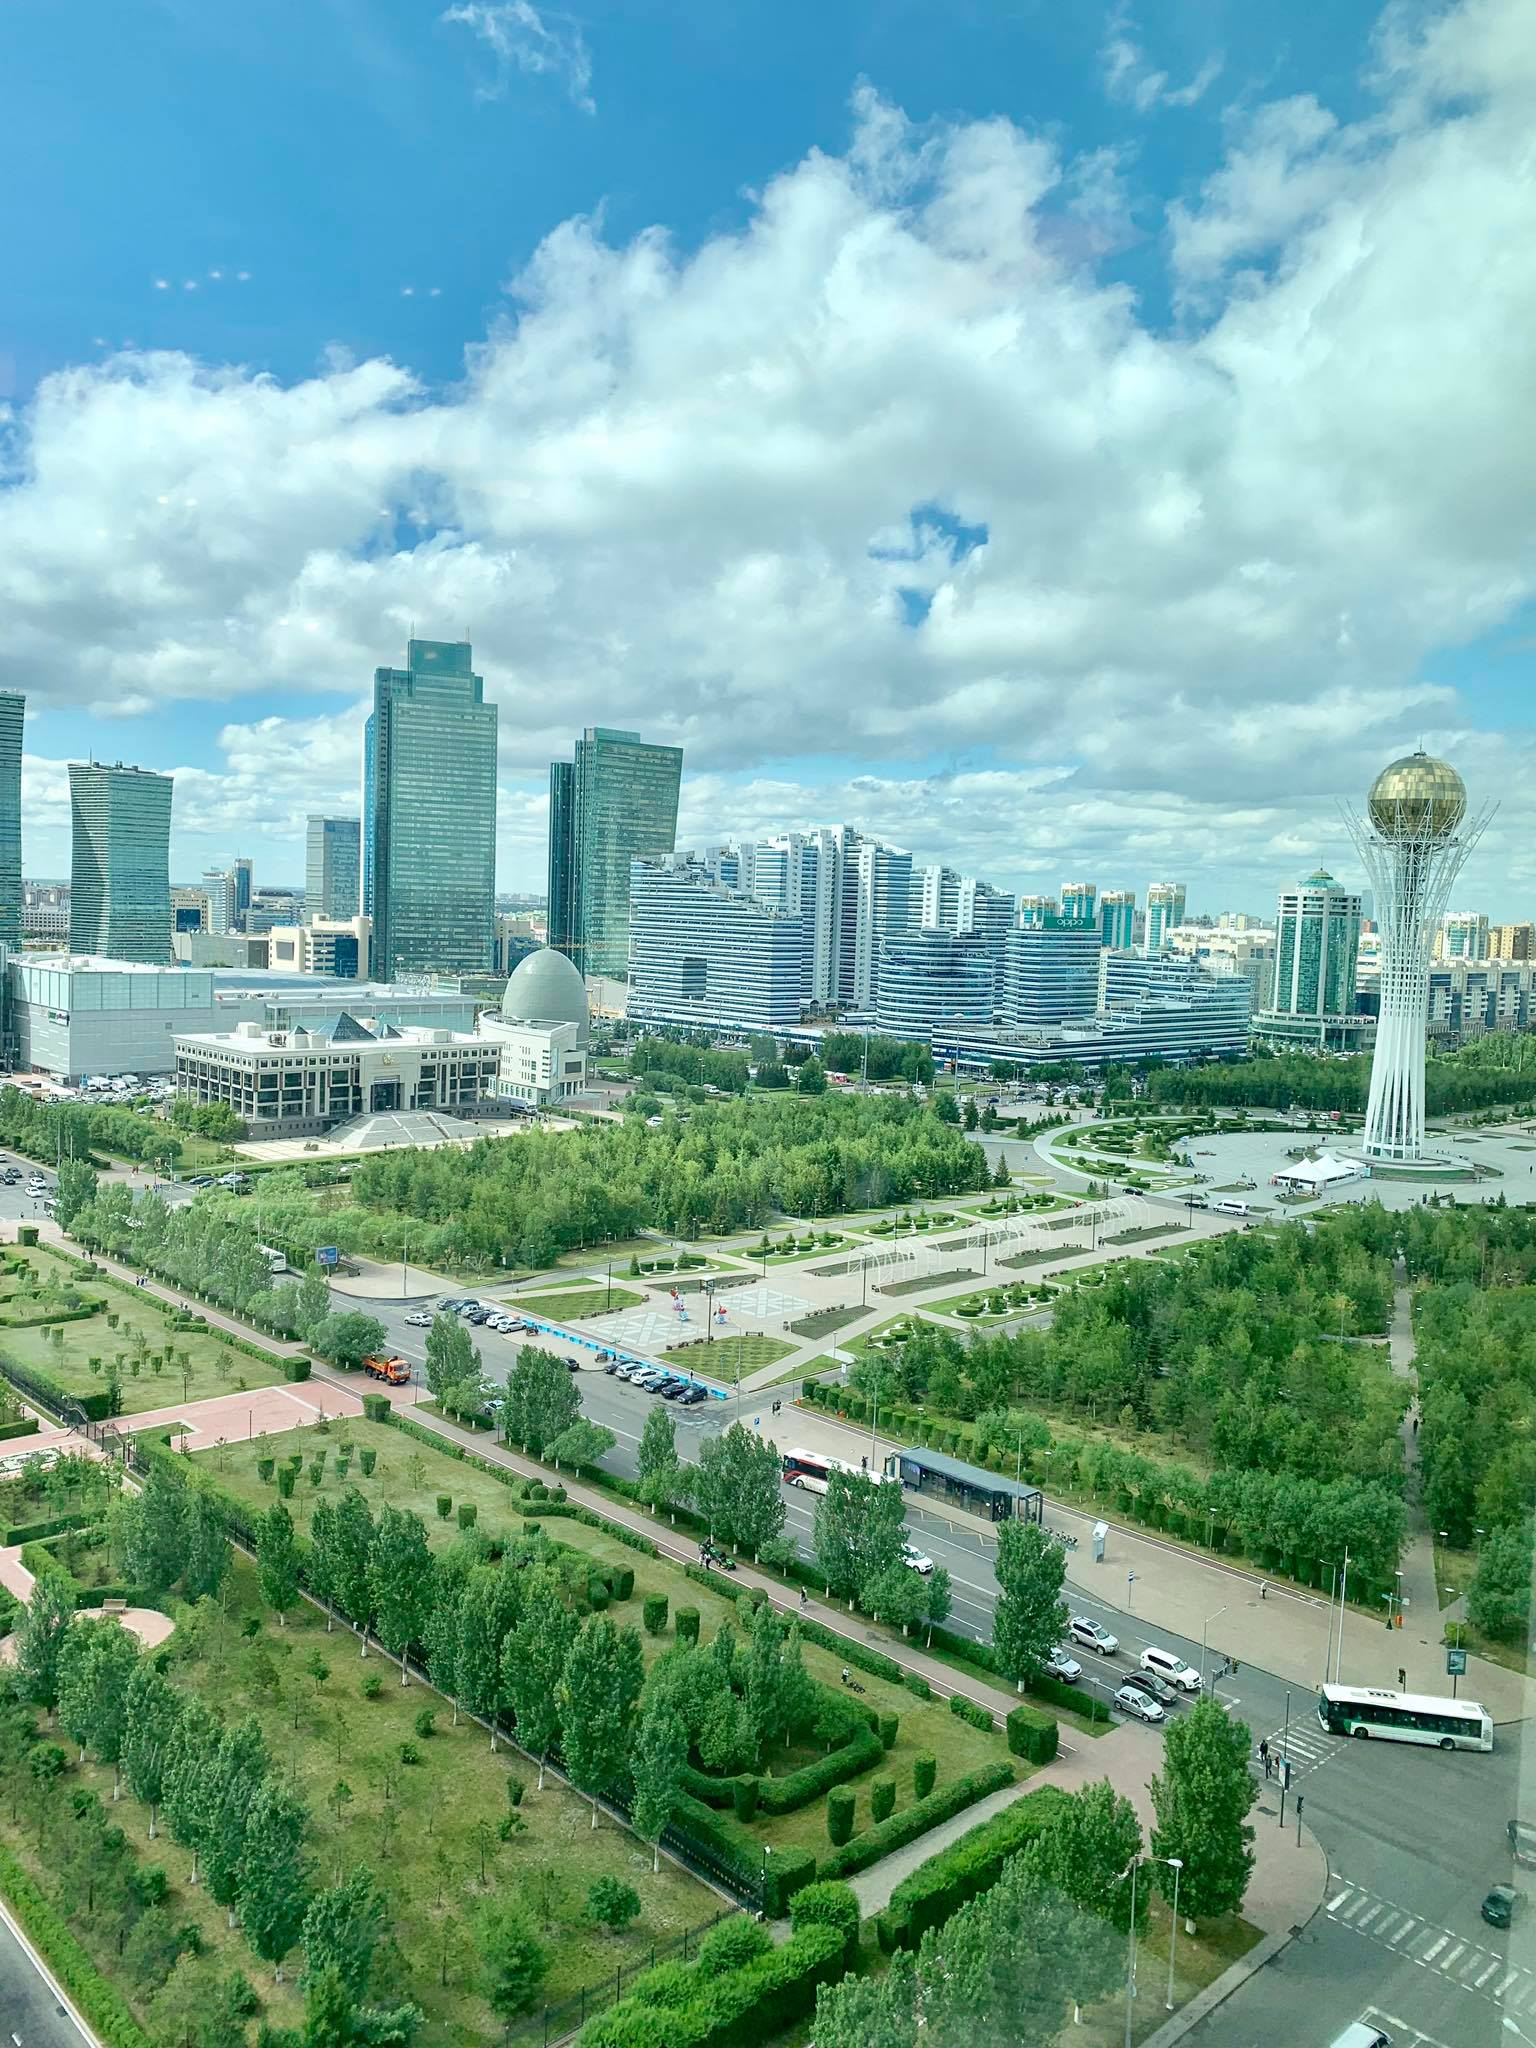 Kach Solo Travels in 2019 Hello from Astana, KAZAKHSTAN (my 129th country)2.jpg